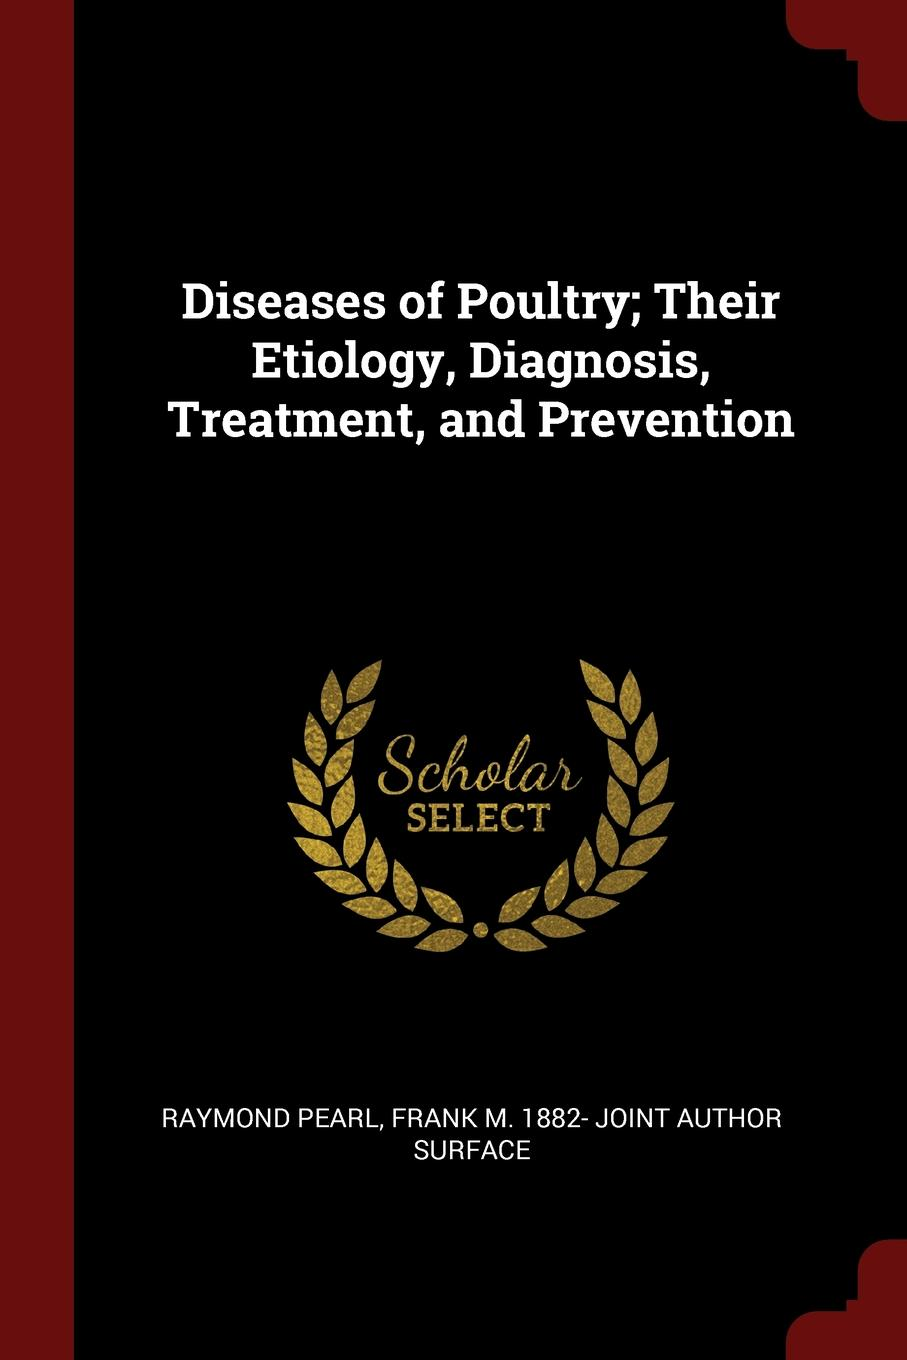 Raymond Pearl, Frank M. 1882- joint author Surface Diseases of Poultry; Their Etiology, Diagnosis, Treatment, and Prevention